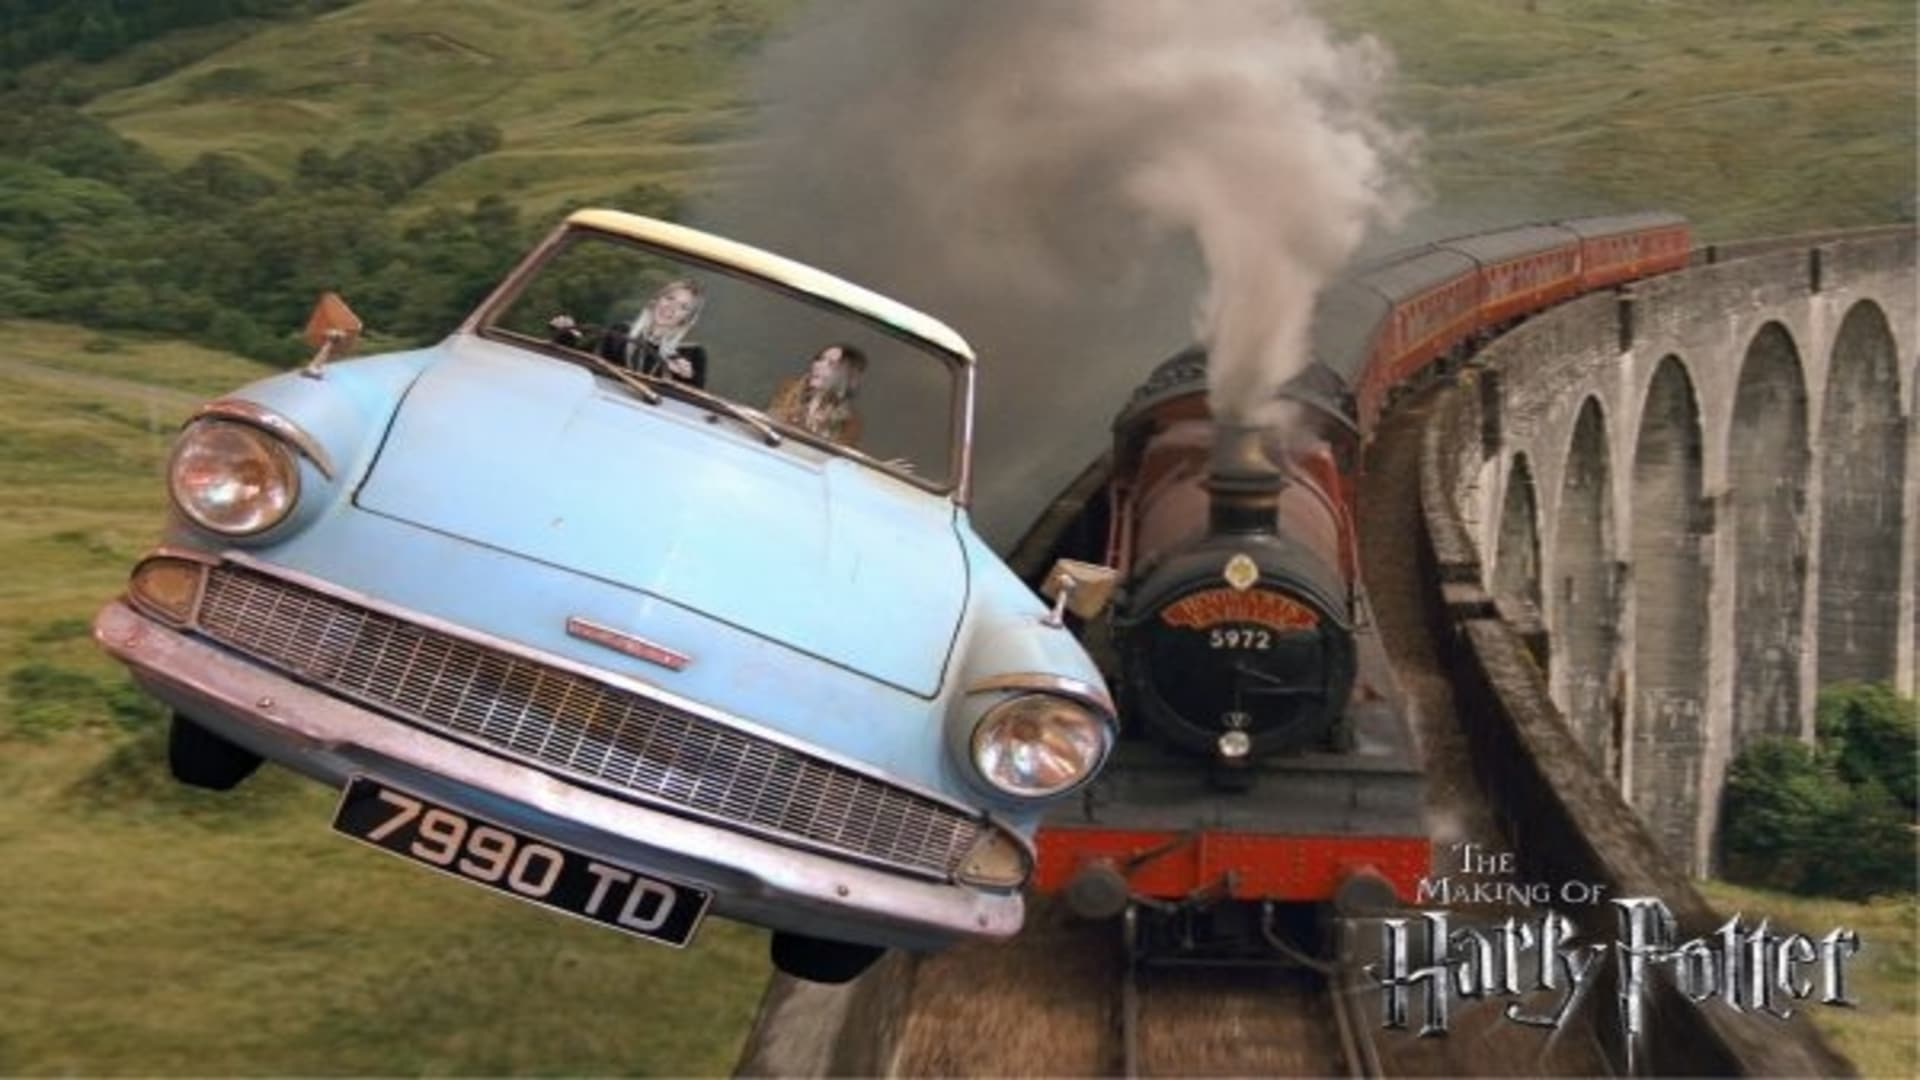 The transportation mess in Harry Potter